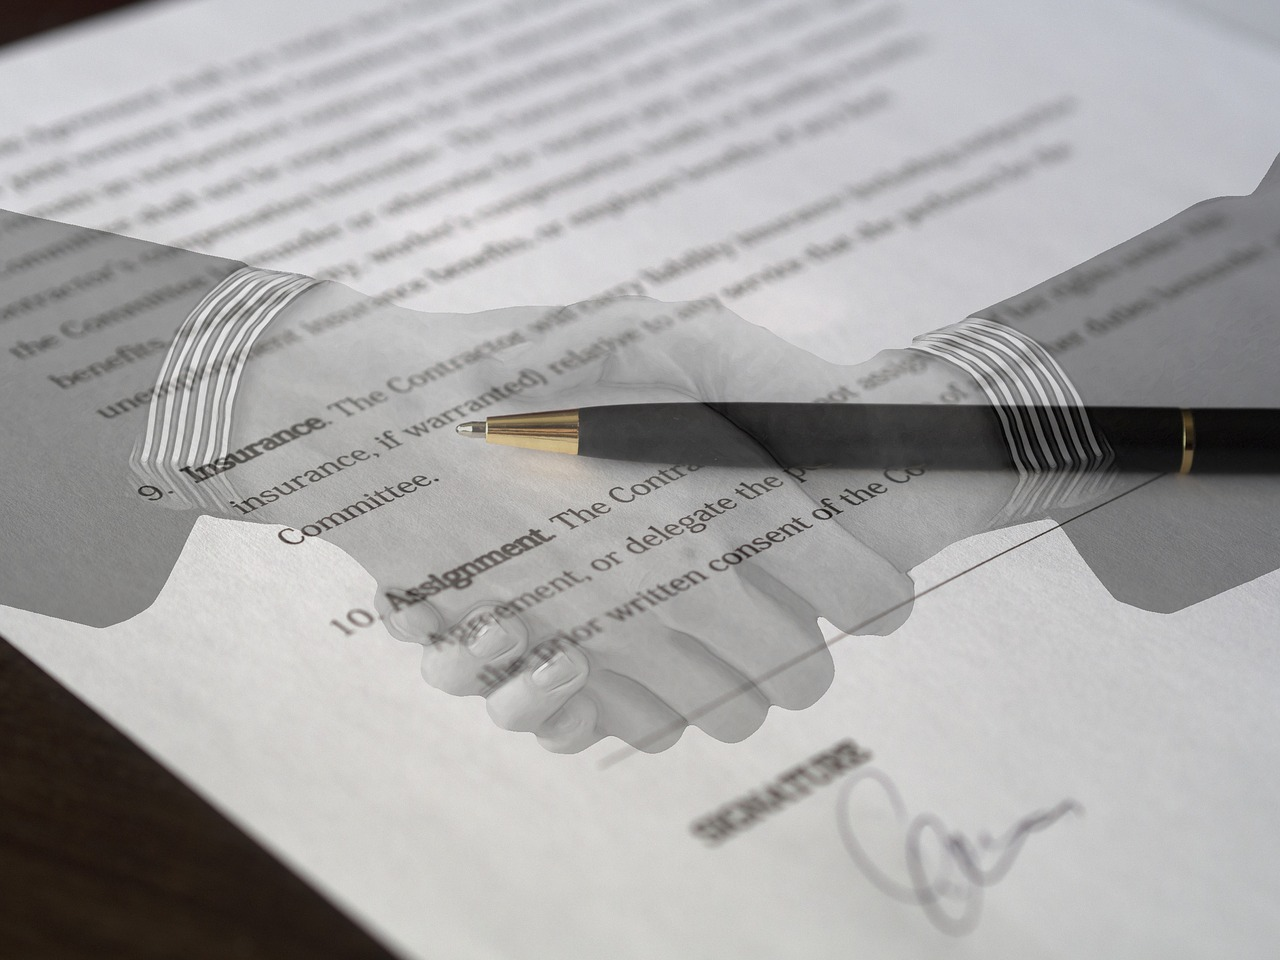 Handshake image superimposed over a signed contract